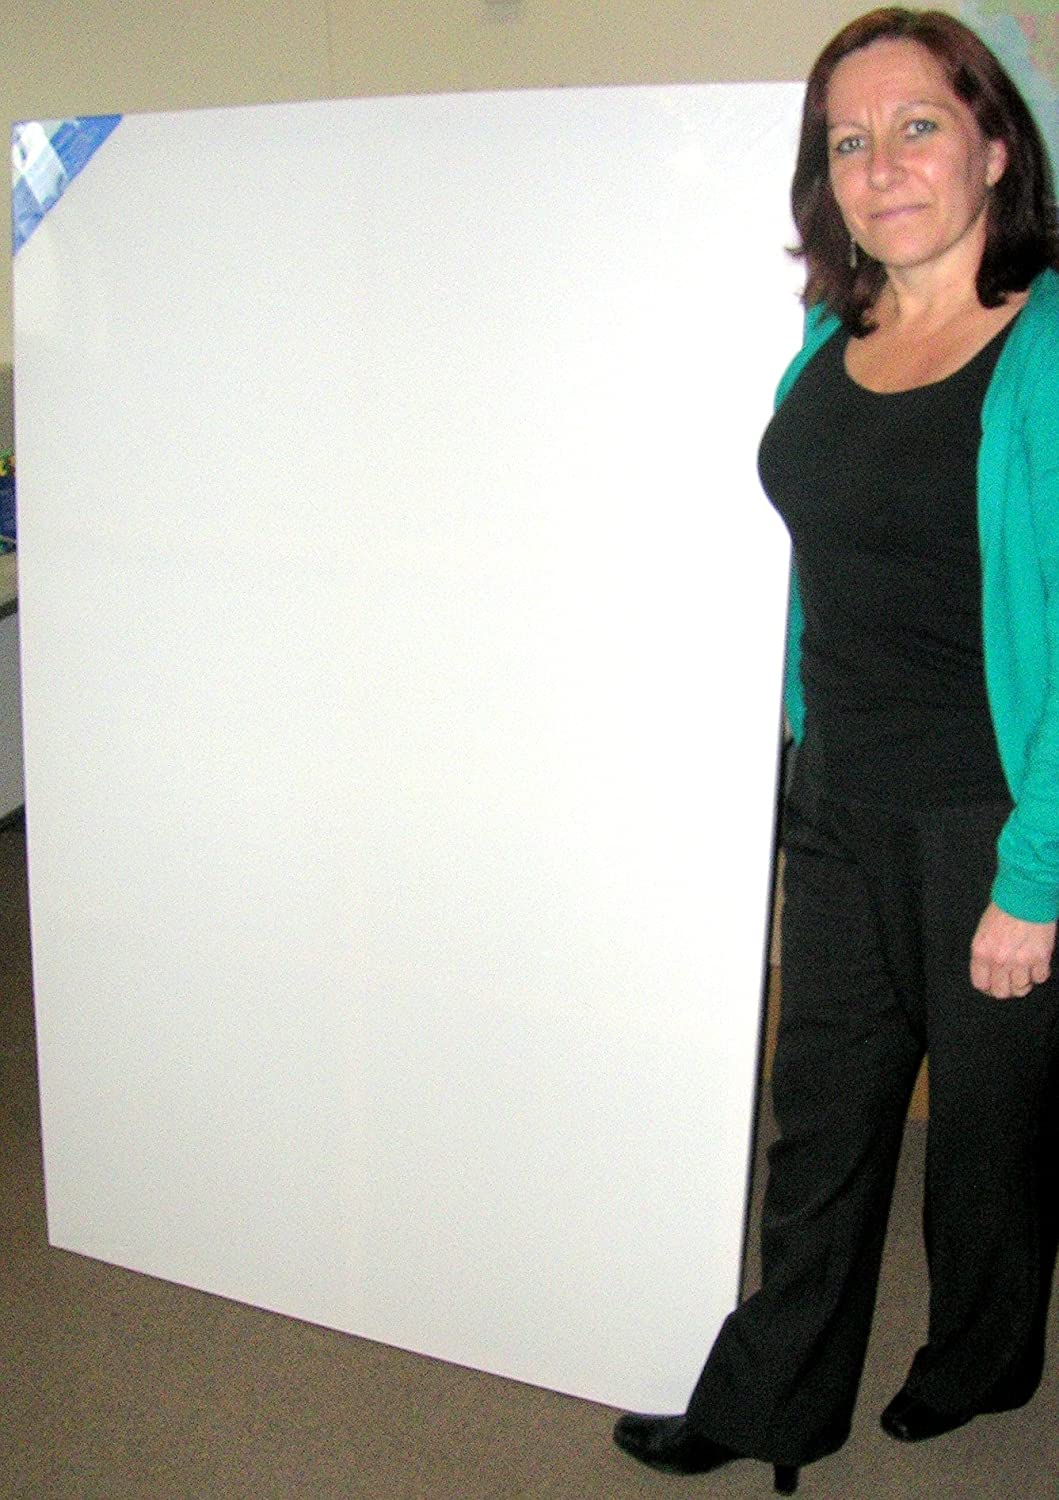 pack of 2 stretched blank canvas for artists extra large size 40